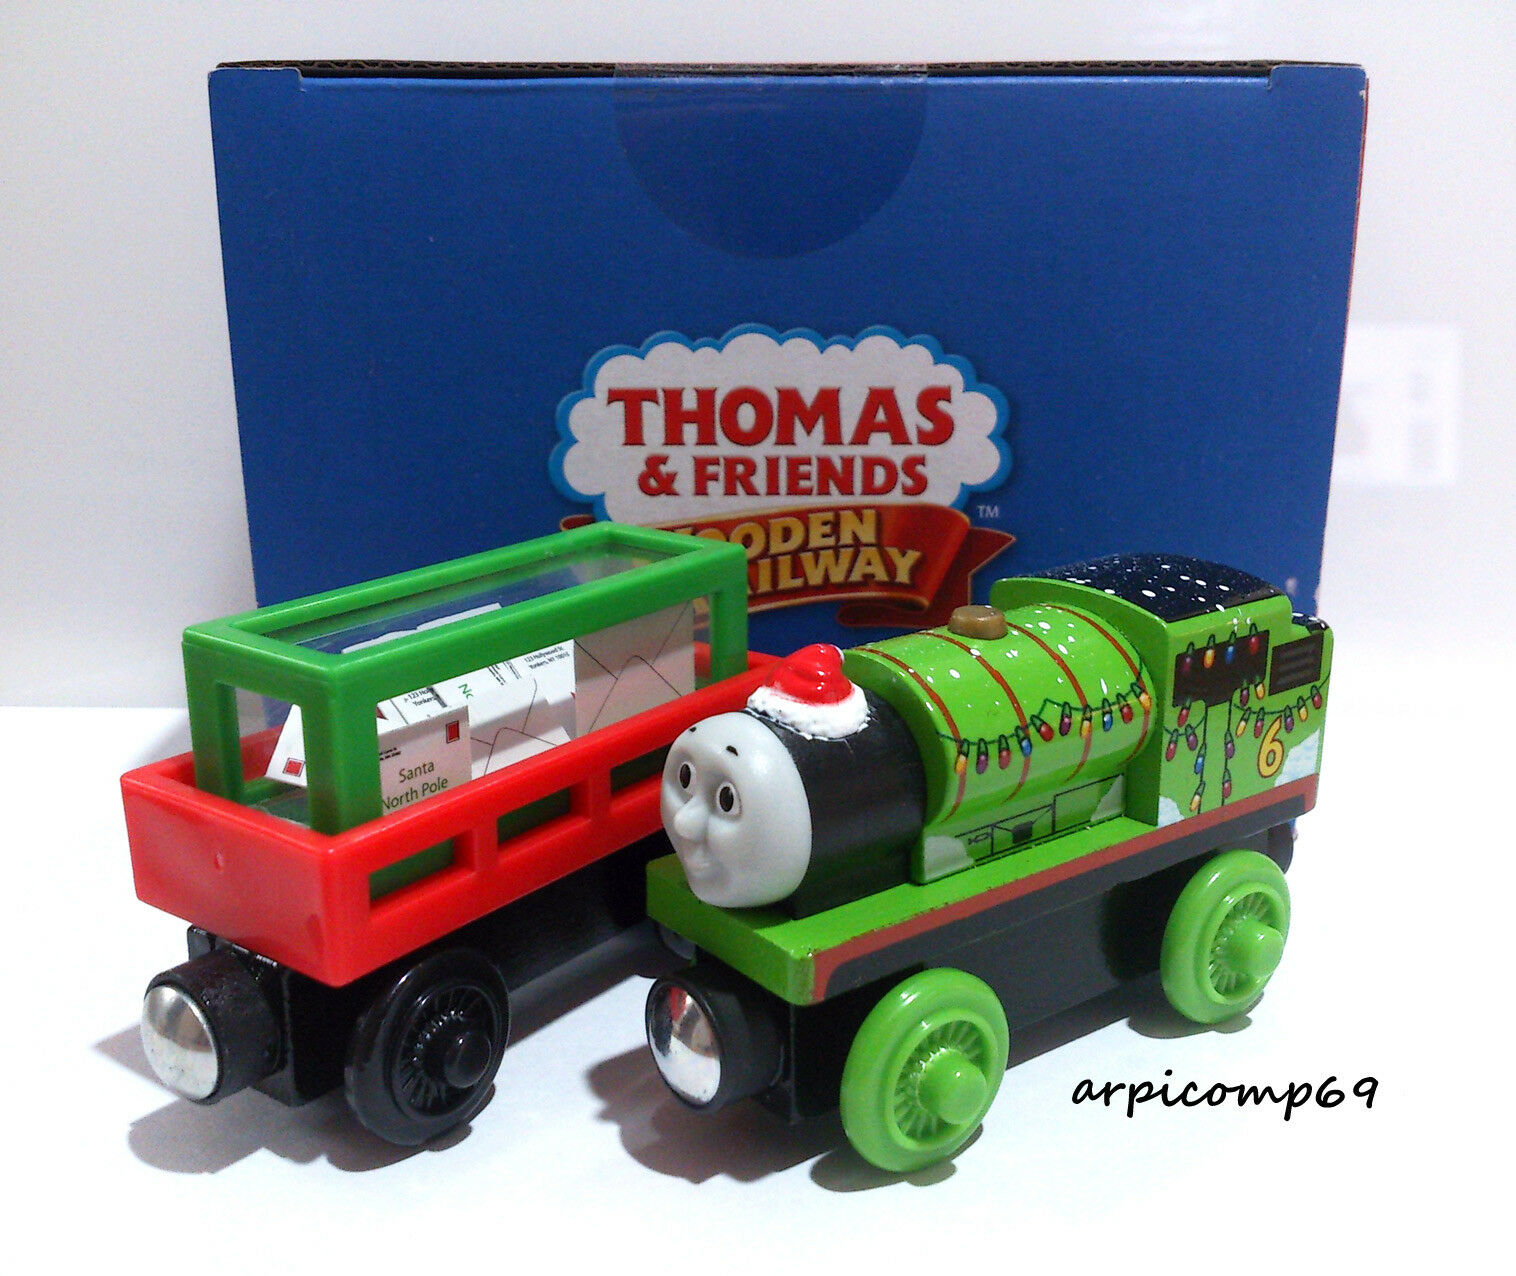 Christmas Percy Letters To Santa Brio Elc Wooden Railway Thomas And Friends For Sale Online Ebay